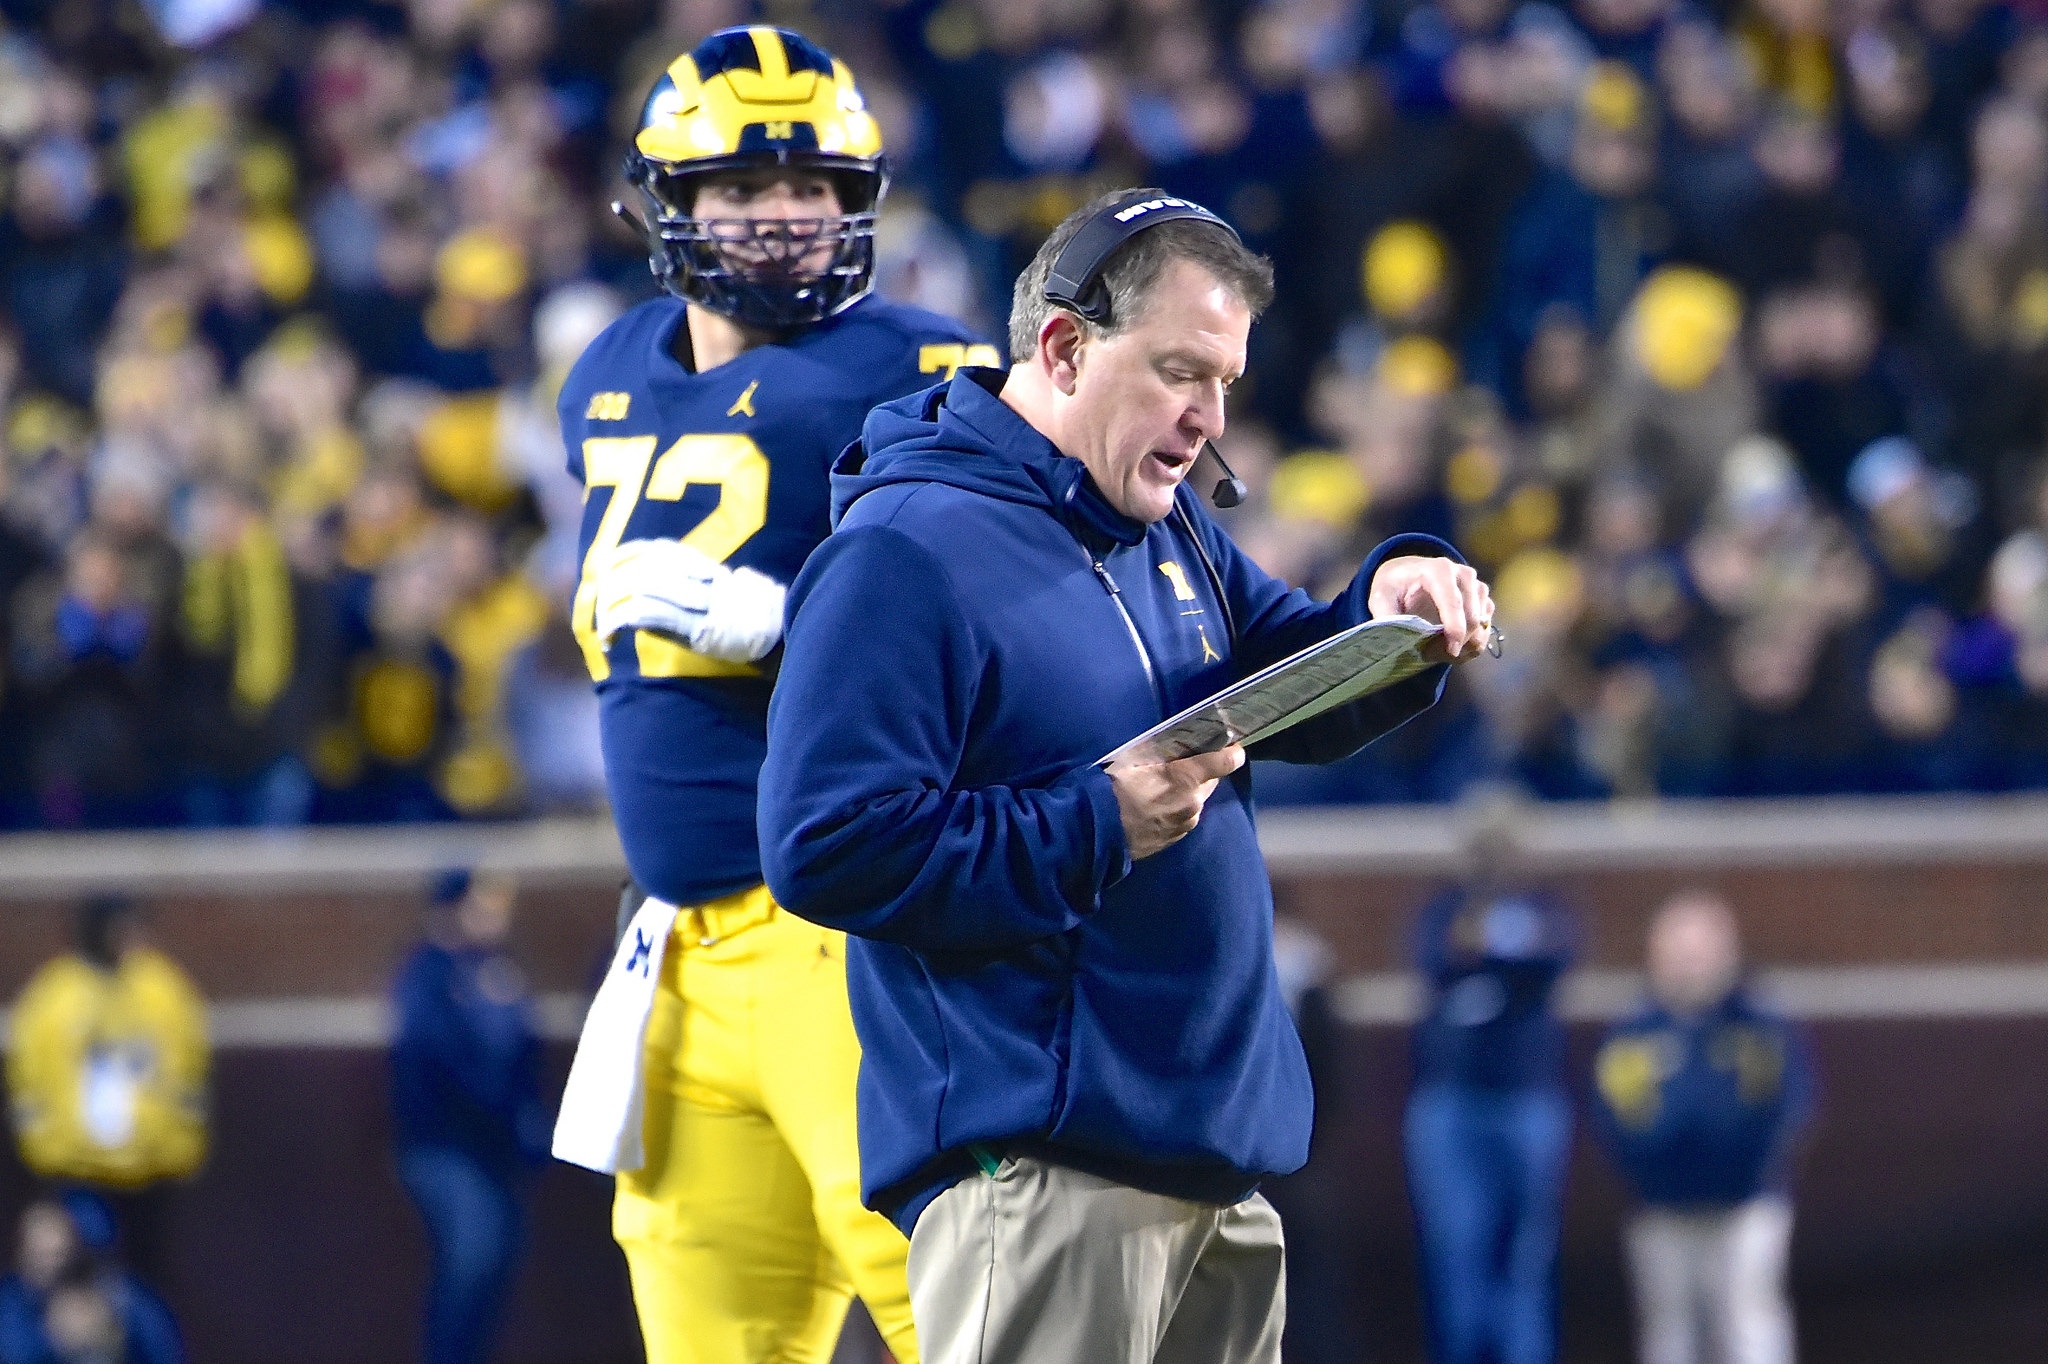 Ed Warinner has turned around Michigan's offensive line